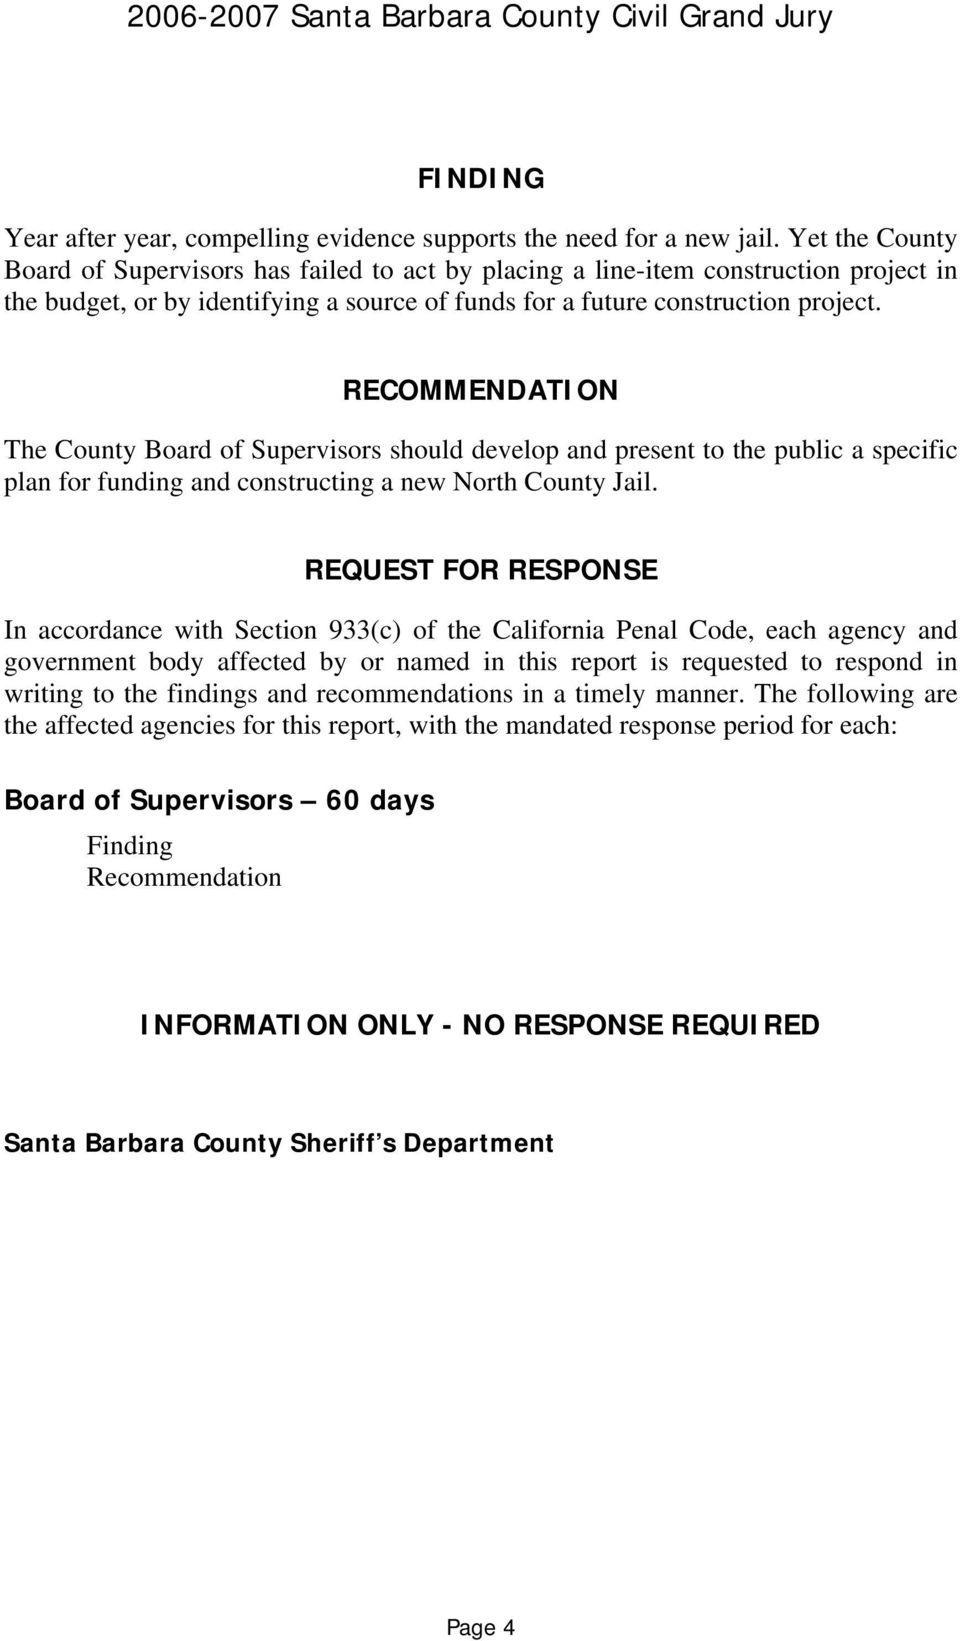 RECOMMENDATION The County Board of Supervisors should develop and present to the public a specific plan for funding and constructing a new North County Jail.